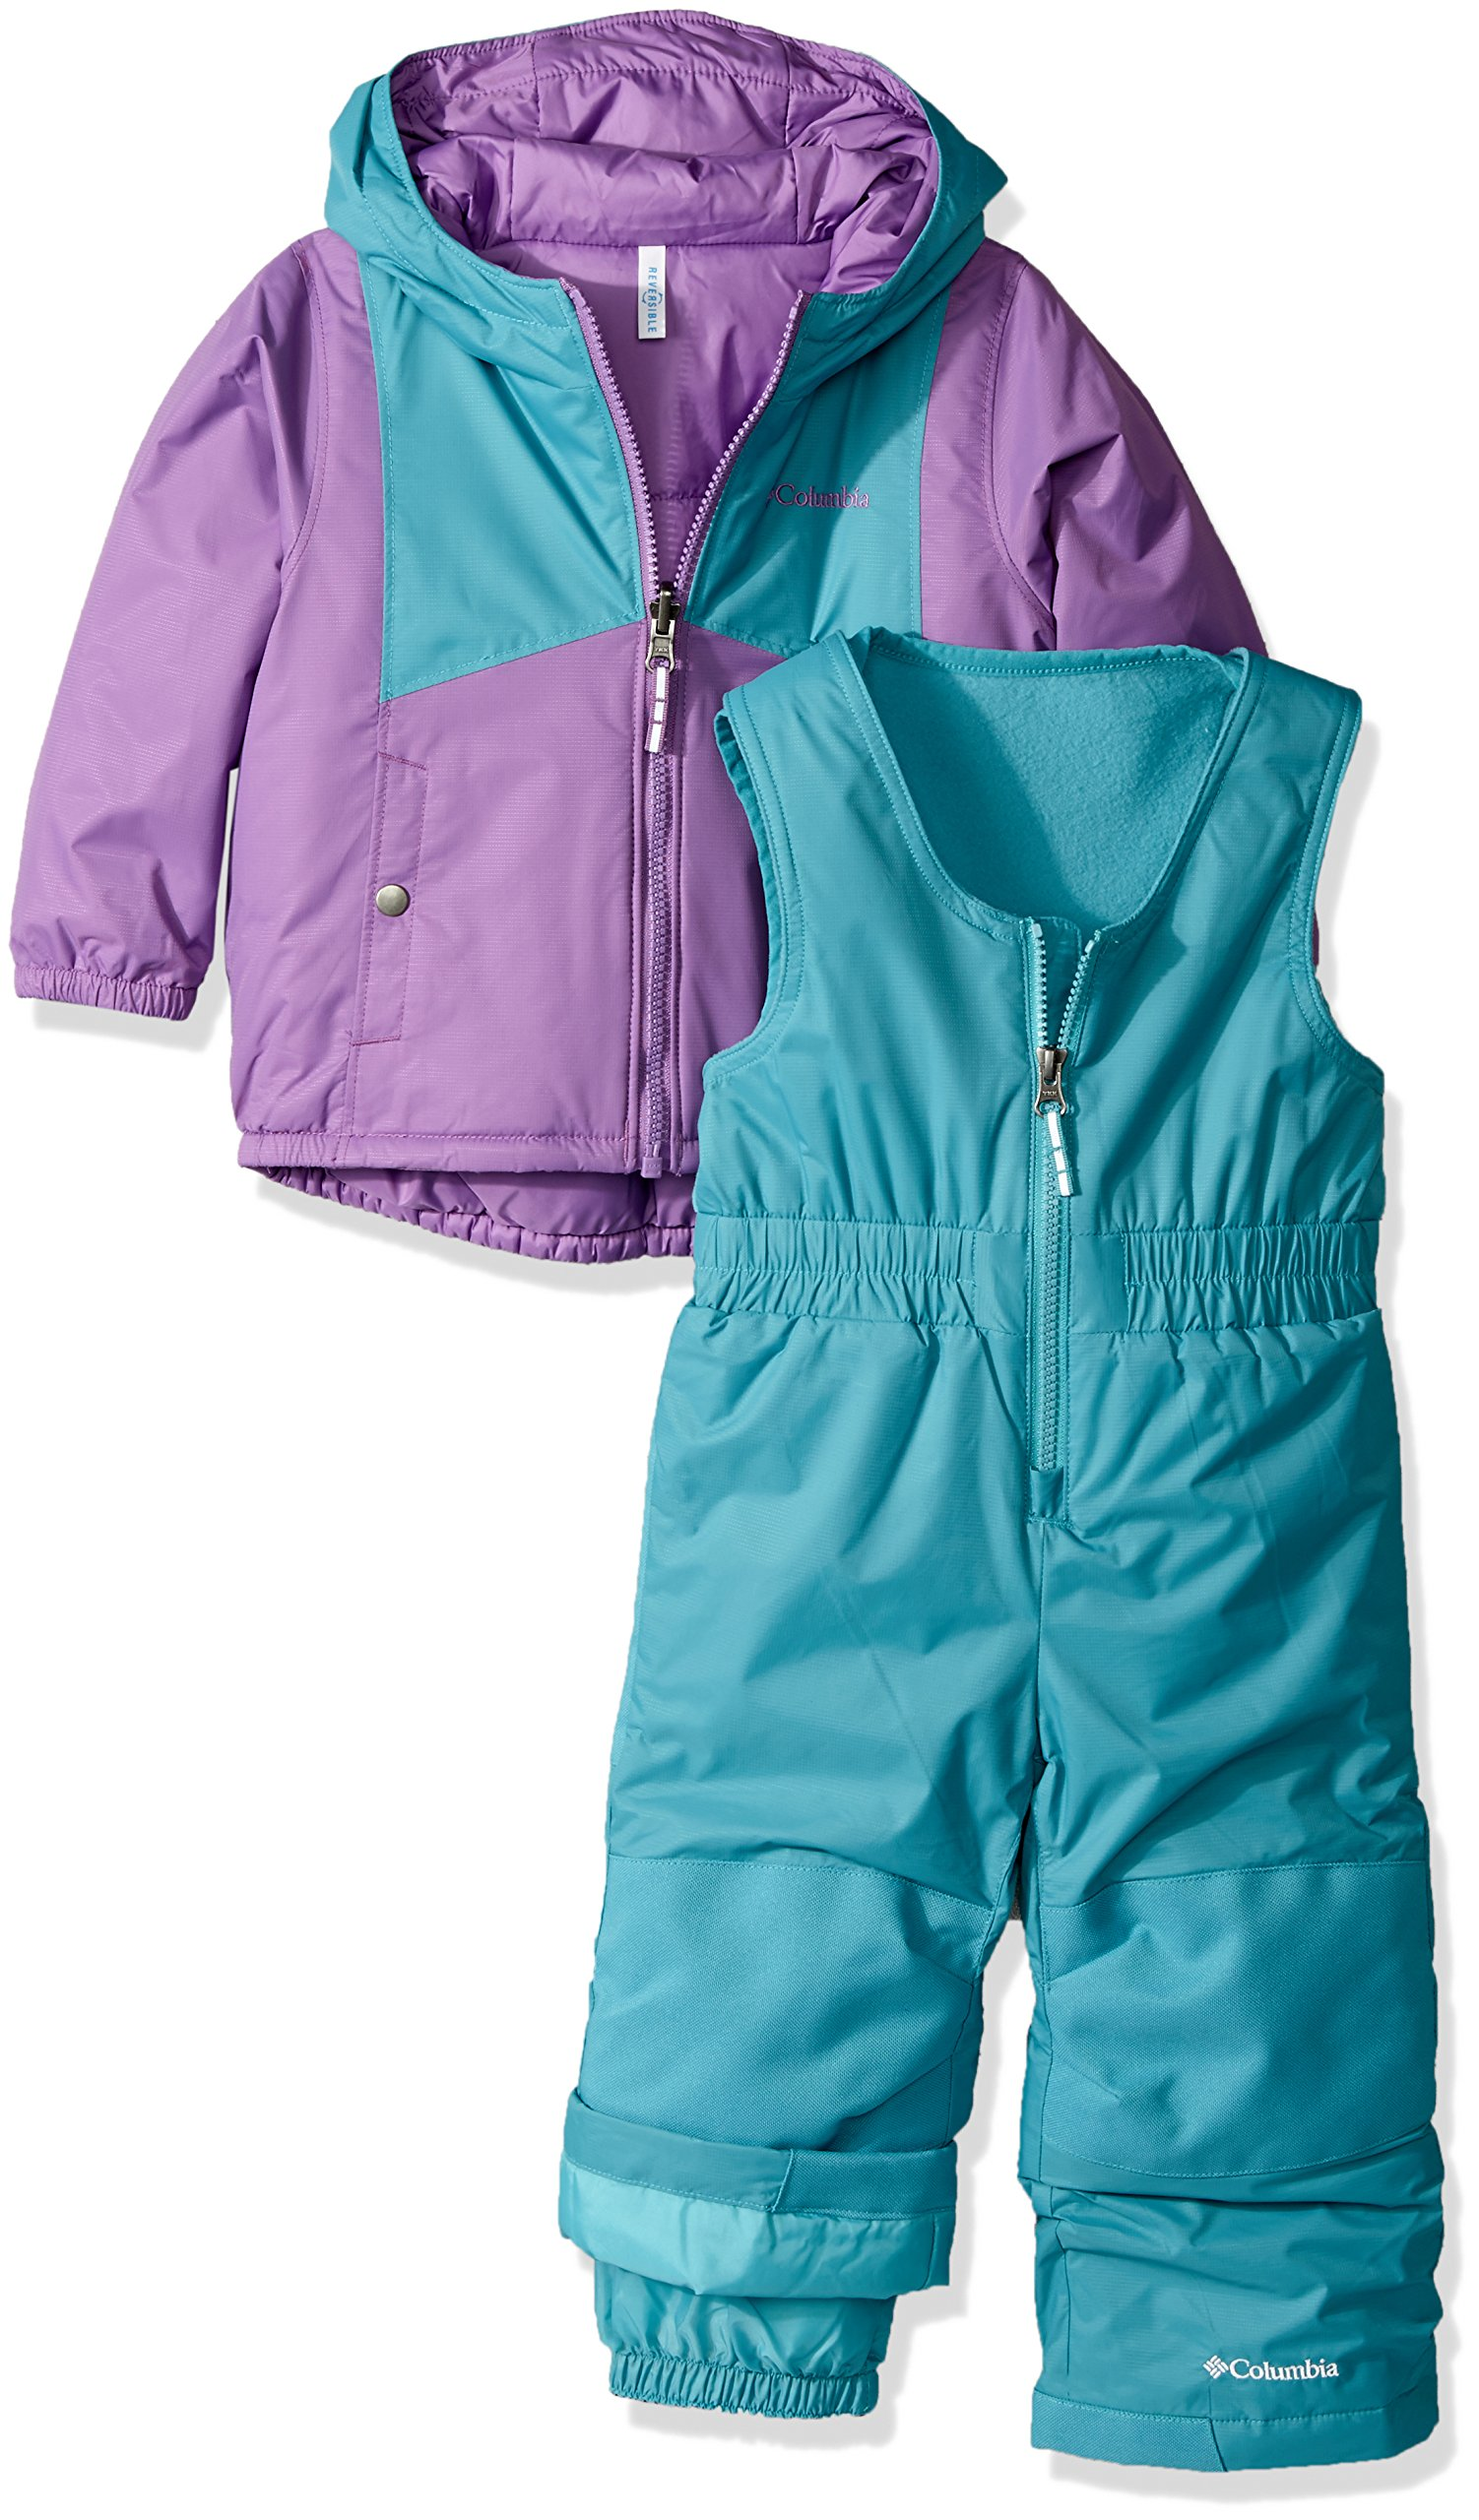 Columbia Toddler Girls' Double Flake Set, Crown Jewel, Pacific Rim, 2T by Columbia